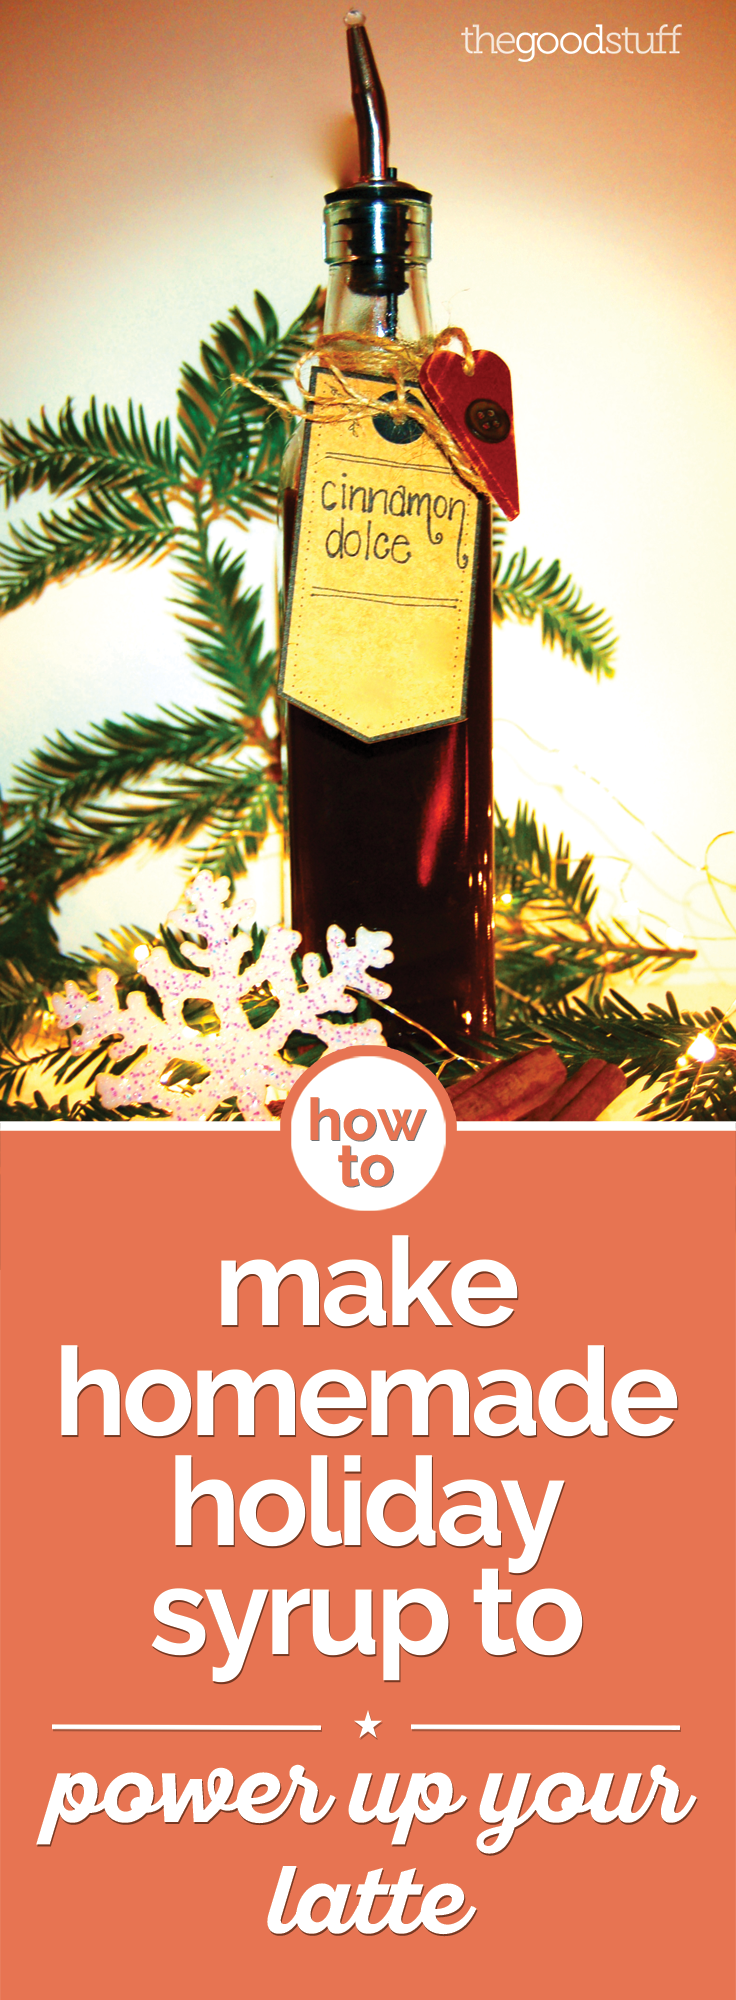 How to Make Homemade Holiday Syrup to Power Up Your Latte